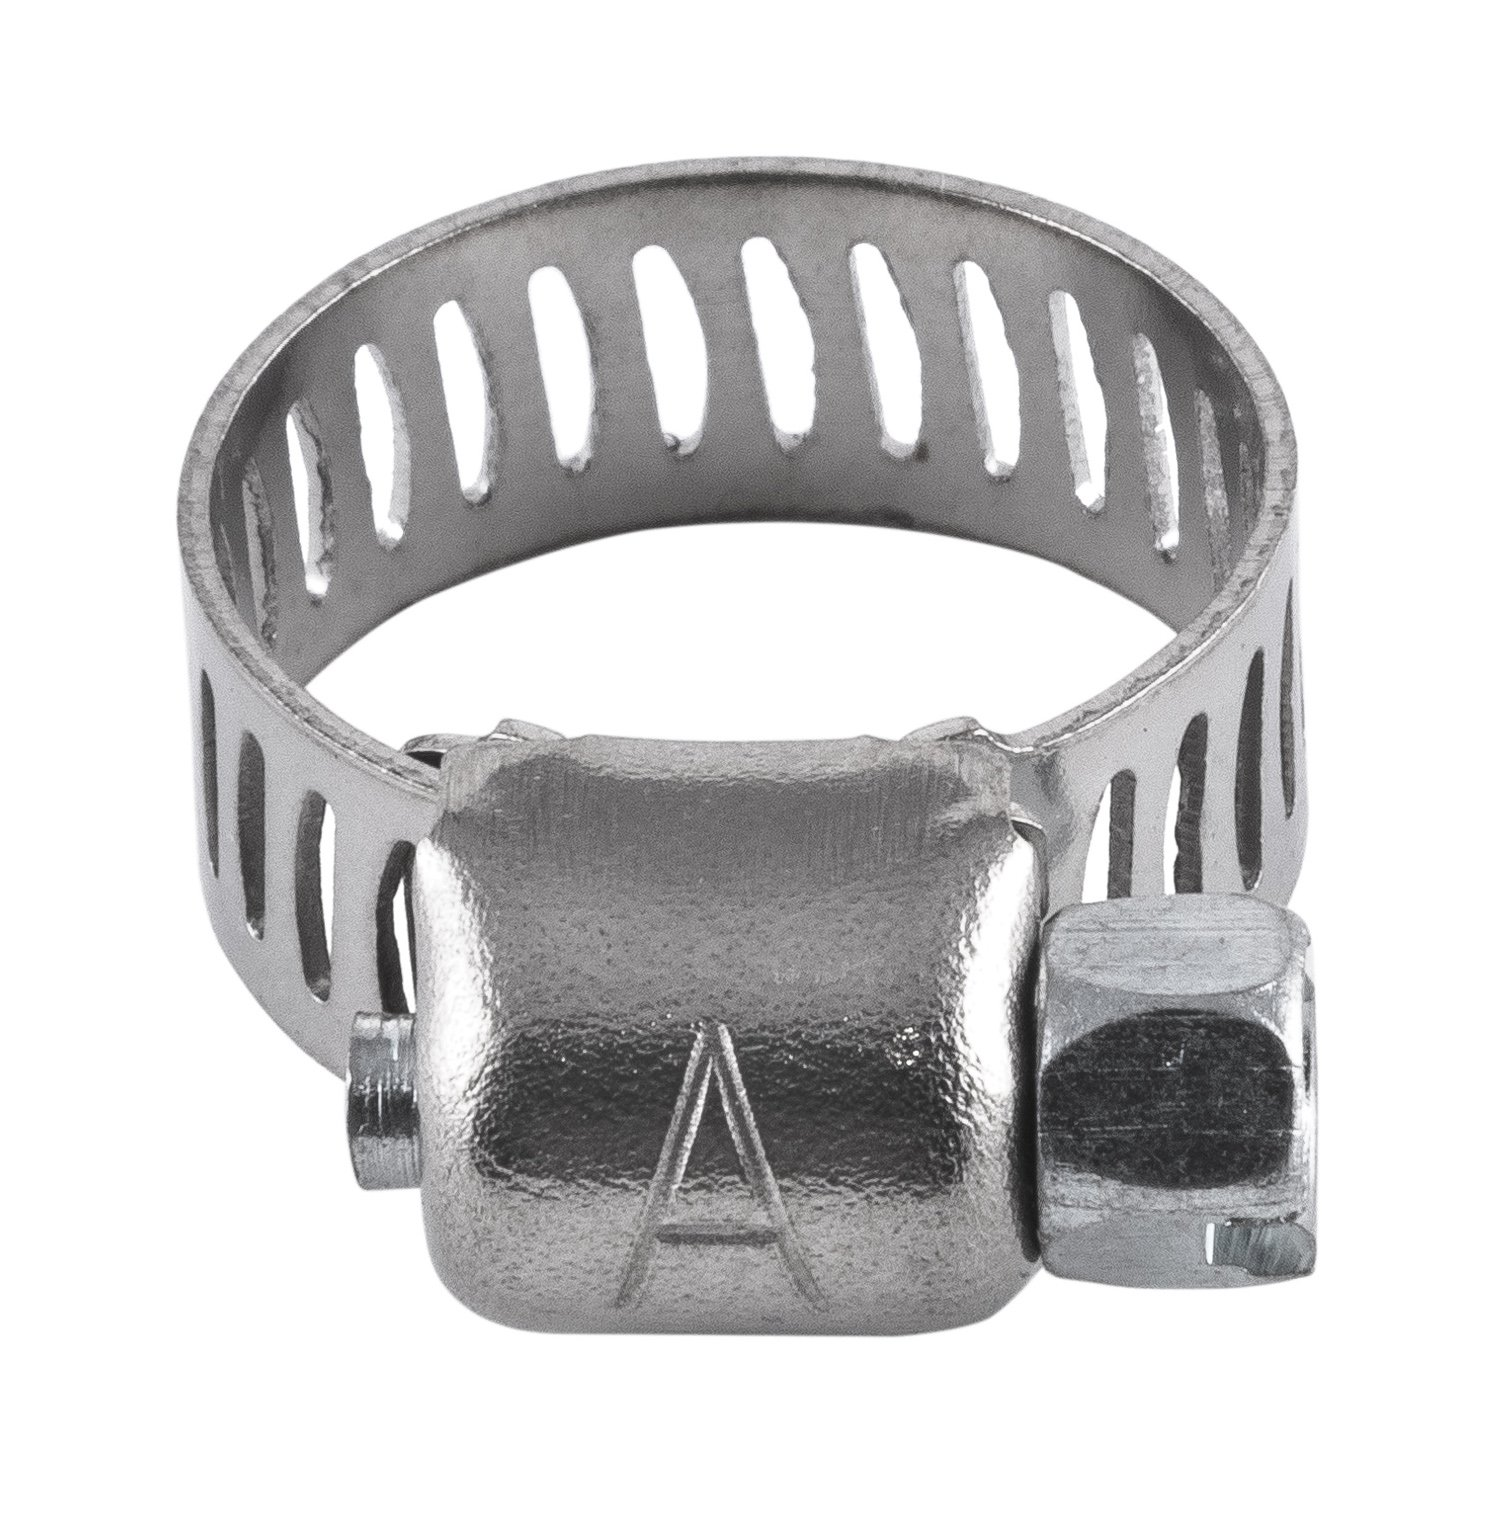 American Valve 10-Pack Worm Gear Hose Clamp, 1/4'' to 5/8'' (SAE size 4), CL4PK10, Stainless Steel Band & Housing